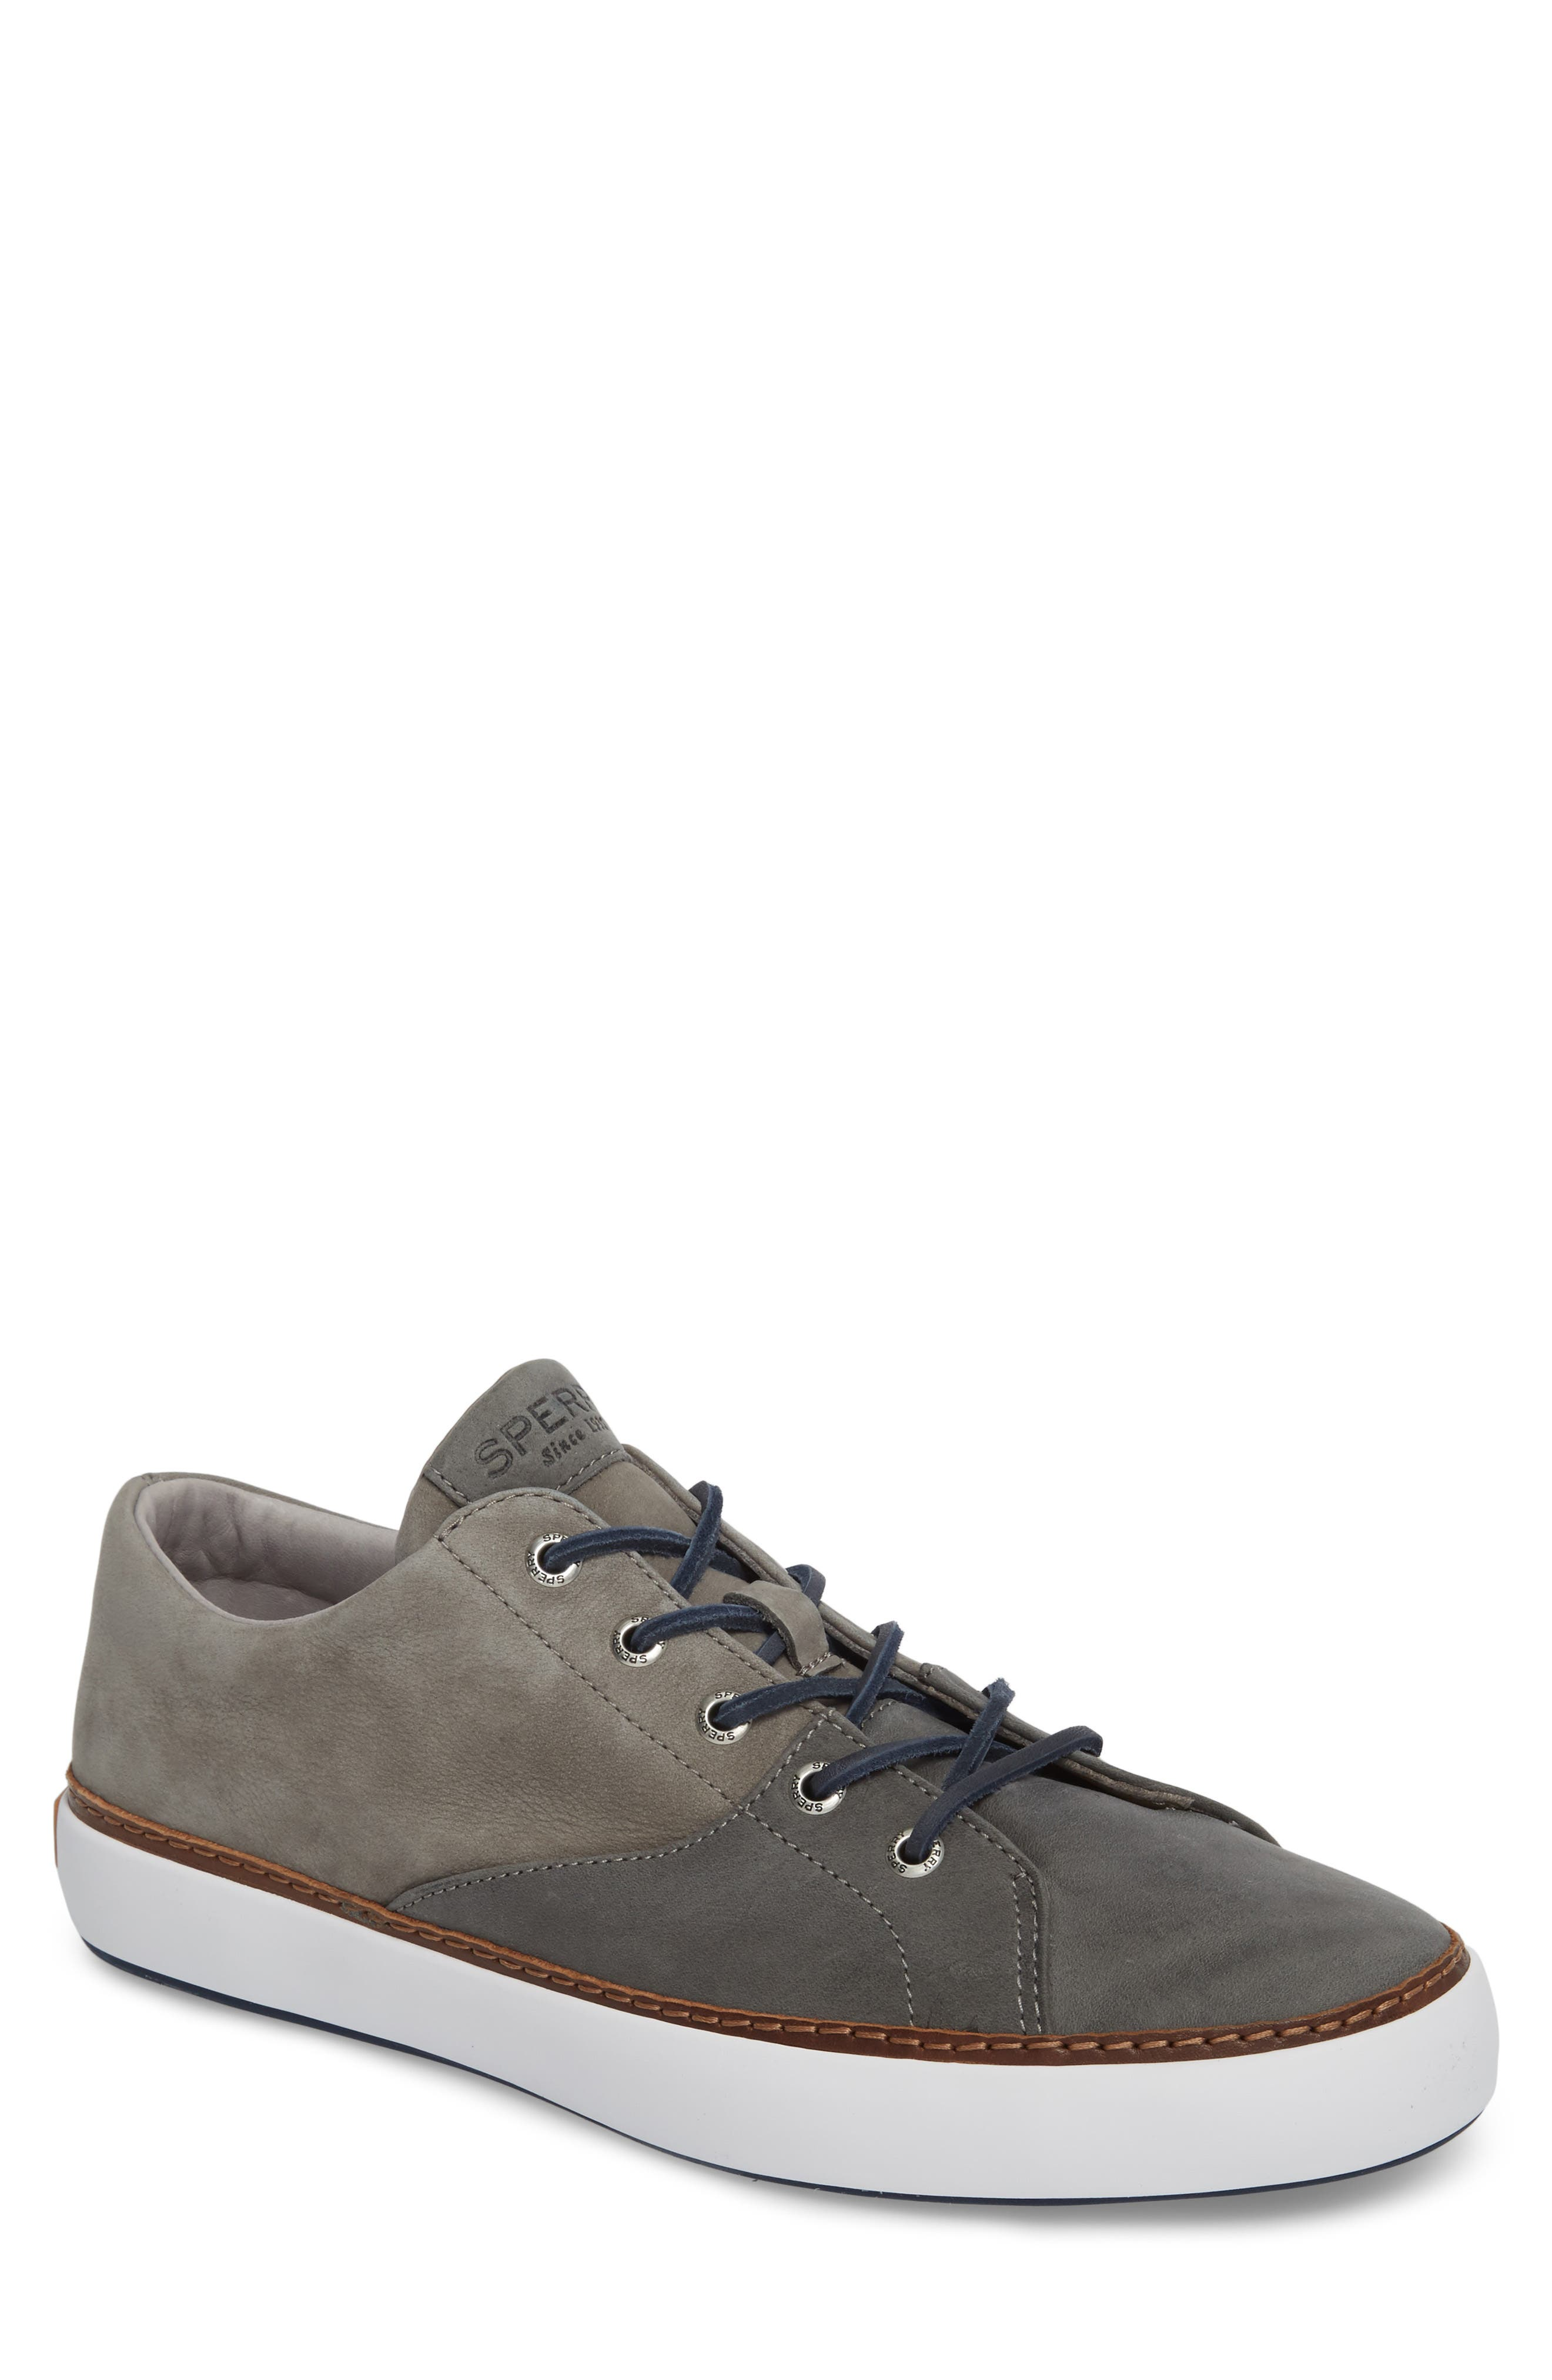 Gold Cup Haven Sneaker,                             Main thumbnail 1, color,                             020